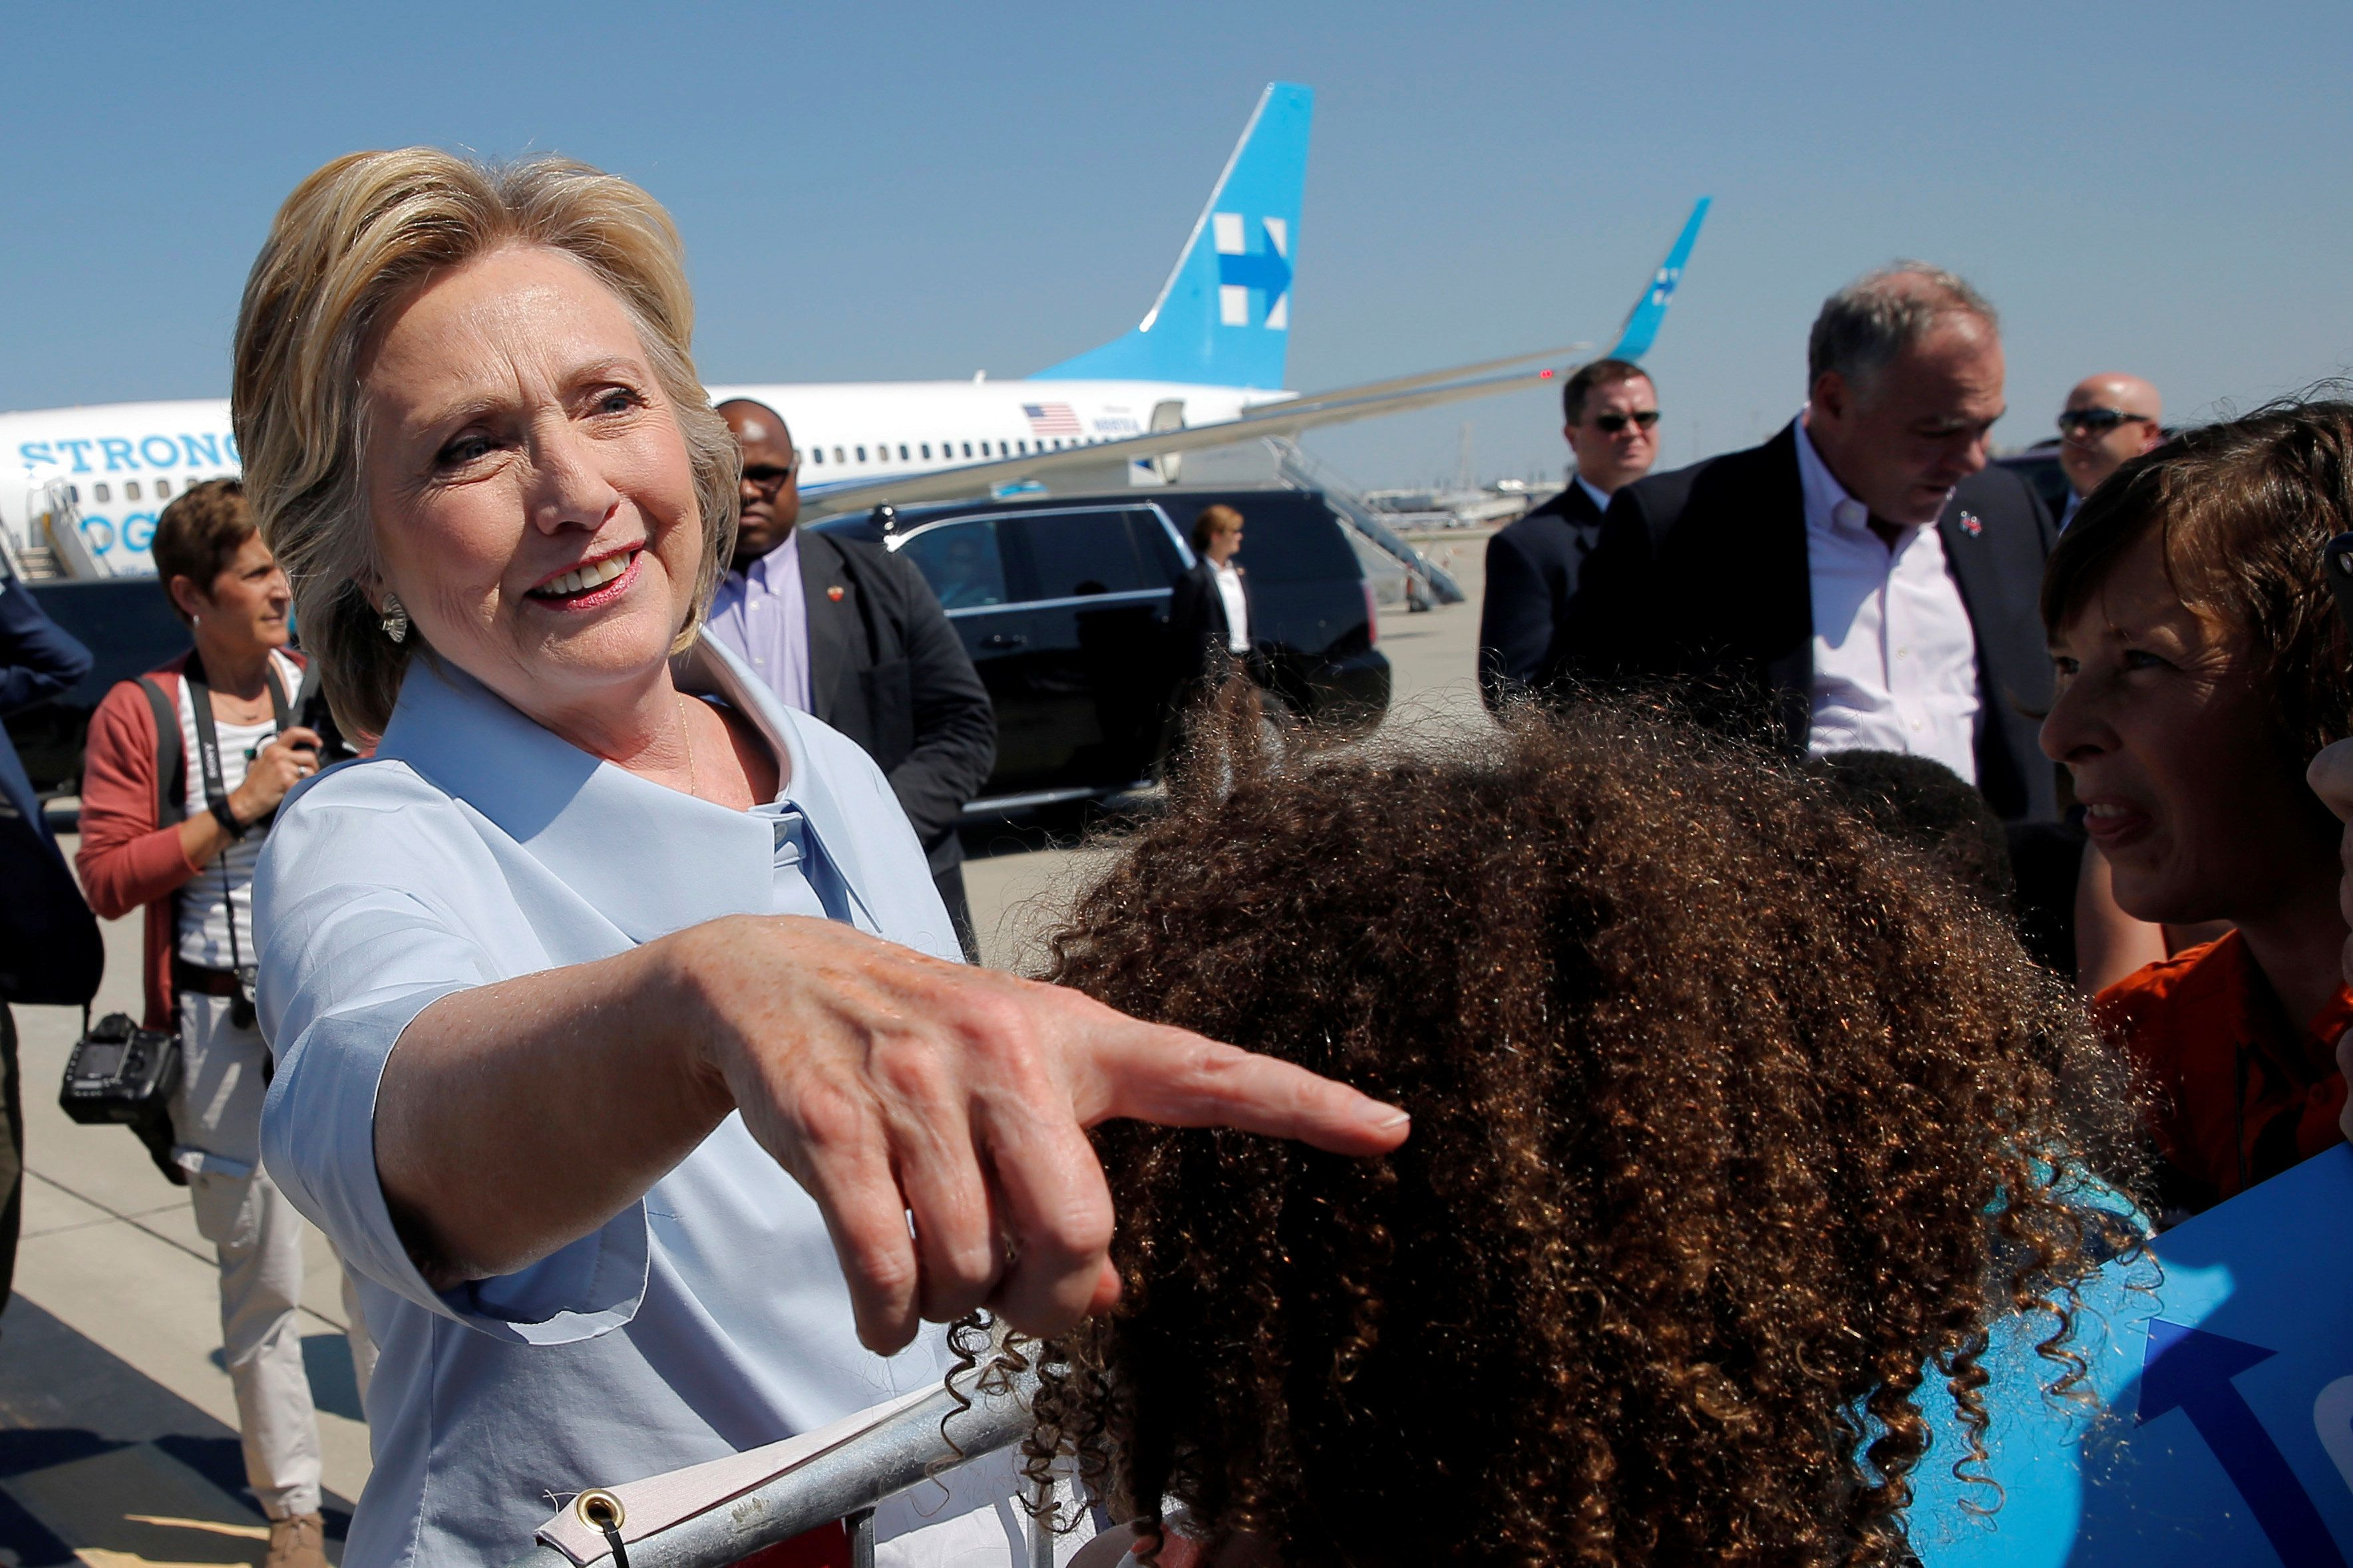 U.S. Democratic presidential nominee Hillary Clinton greets well-wishers as she arrives in Cleveland, Ohio, U.S., September 5, 2016. REUTERS/Brian Snyder